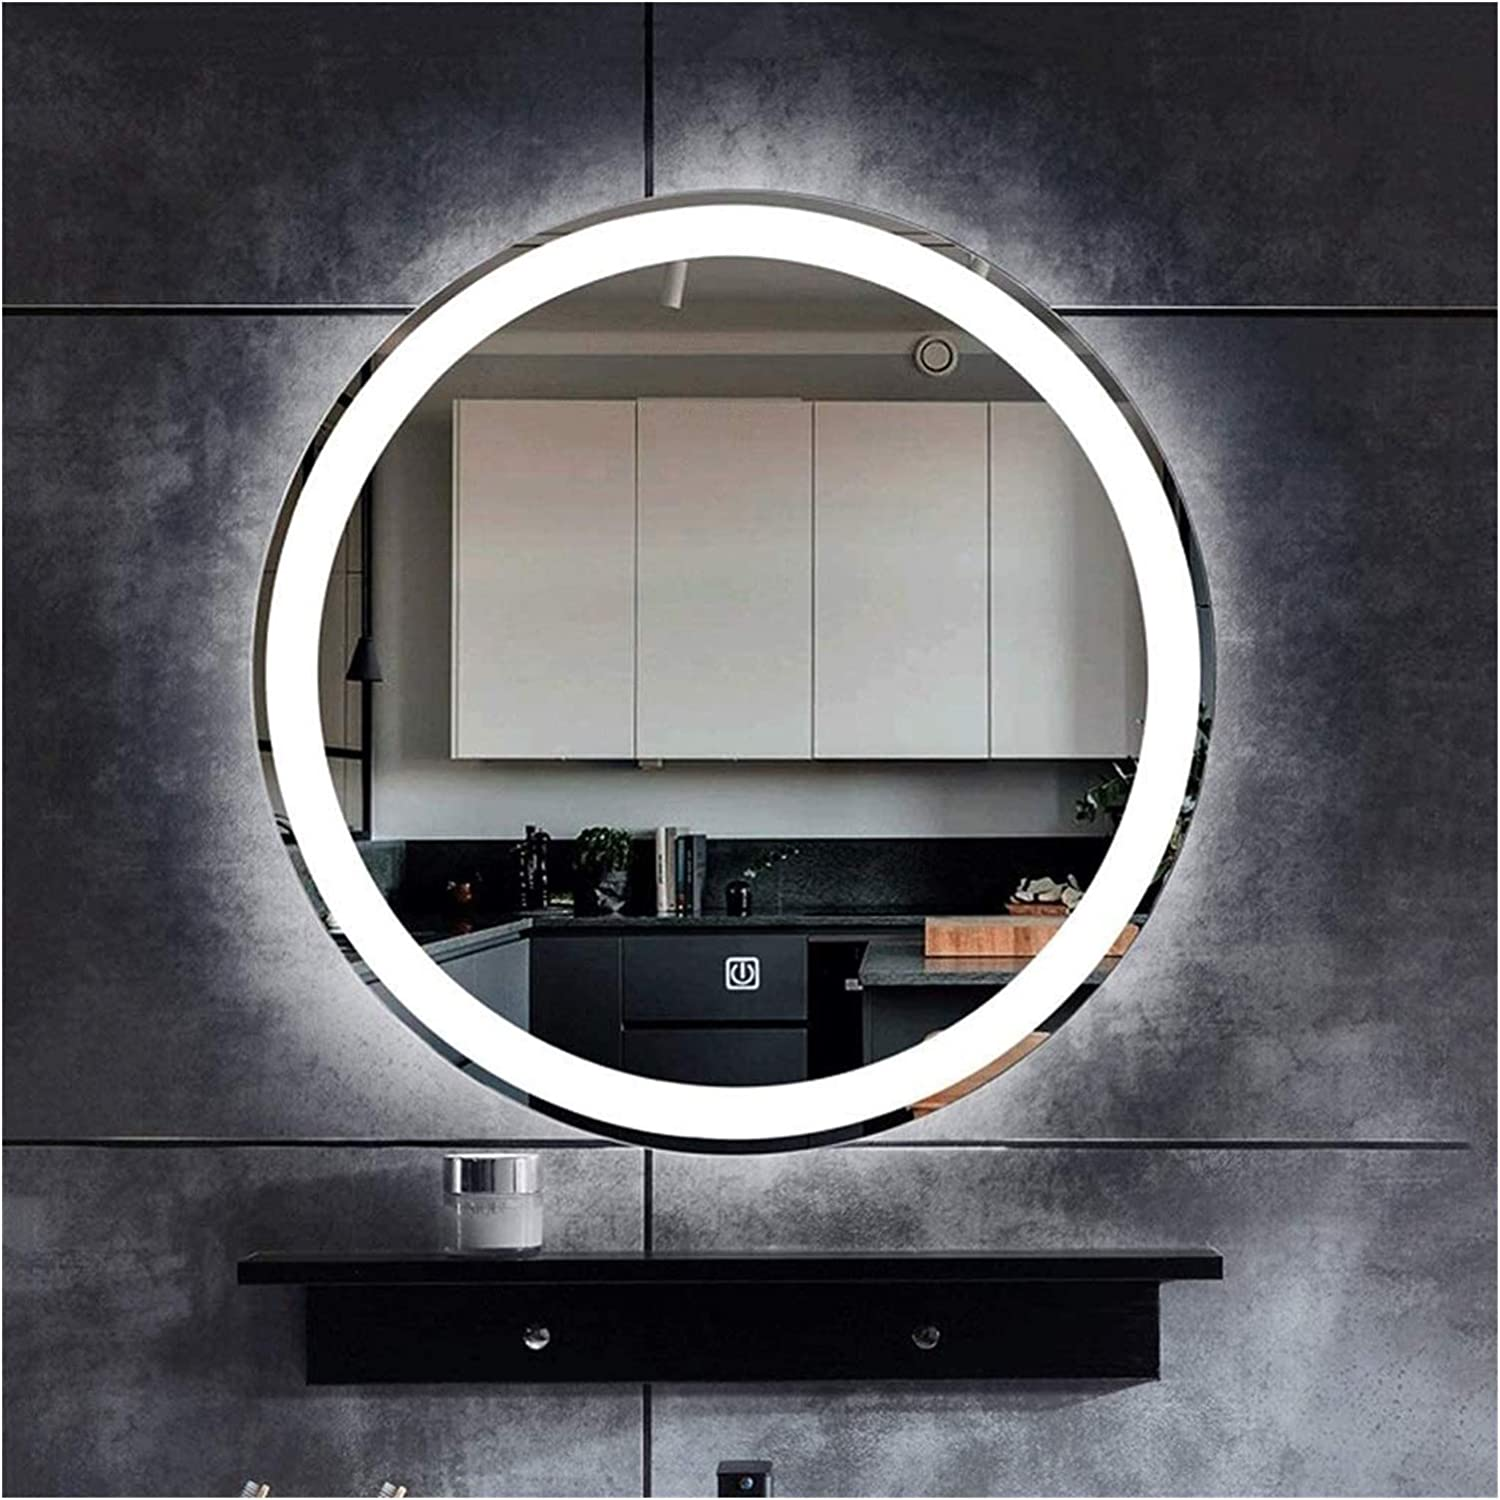 Illuminated LED Bathroom Mirror Touch Max 57% OFF Wall New sales Switch with